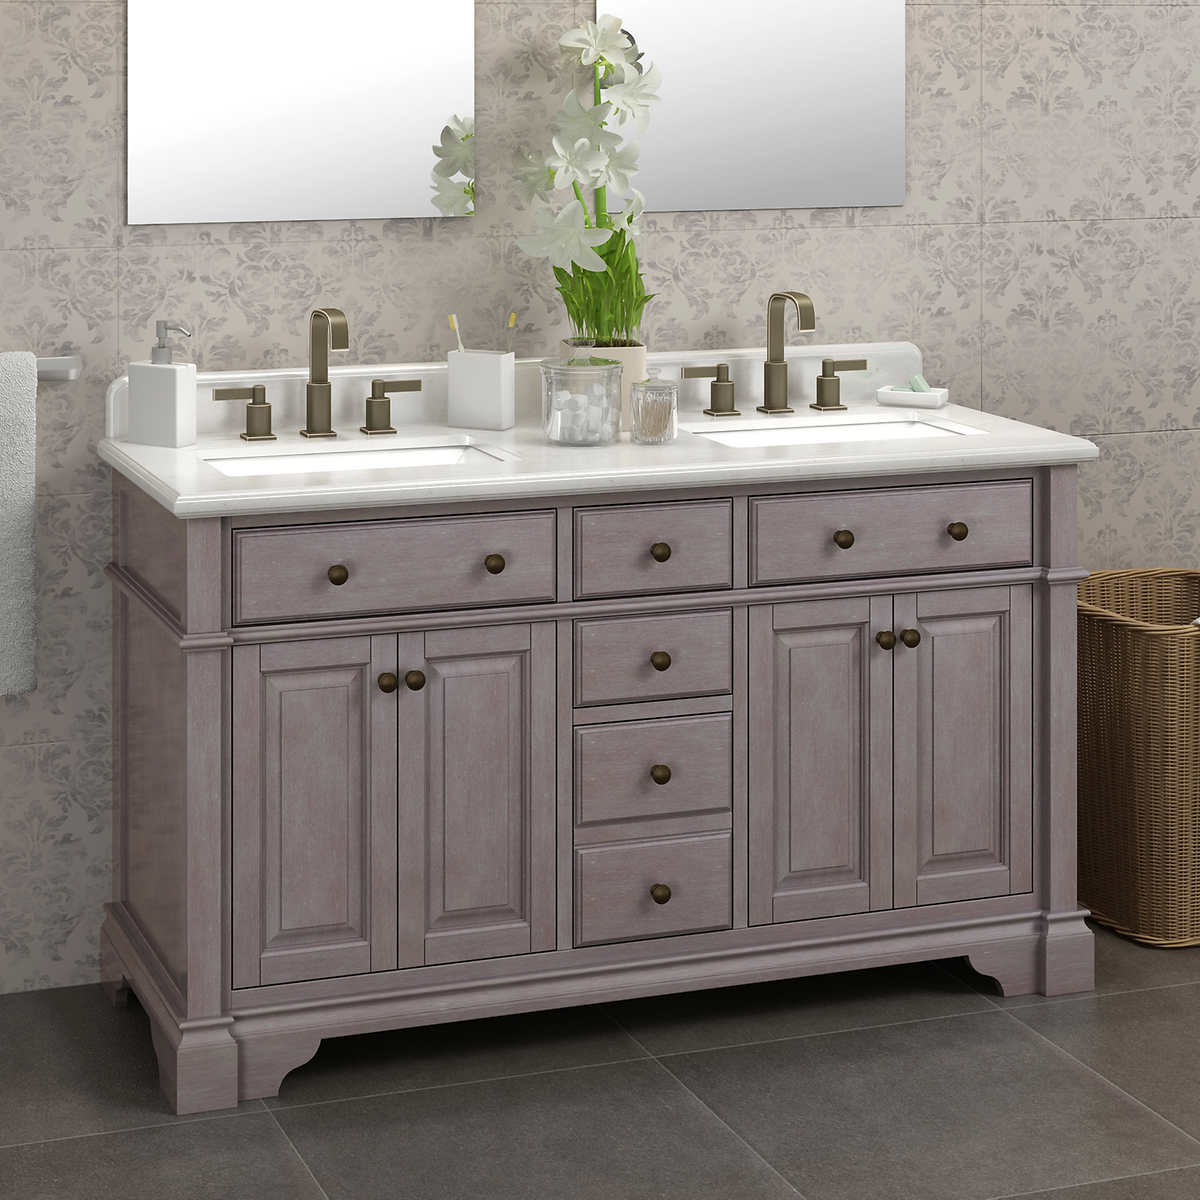 ... Antique Gray Double Sink Vanity by Lanza. Item #461623. 1 1 - Casanova 60